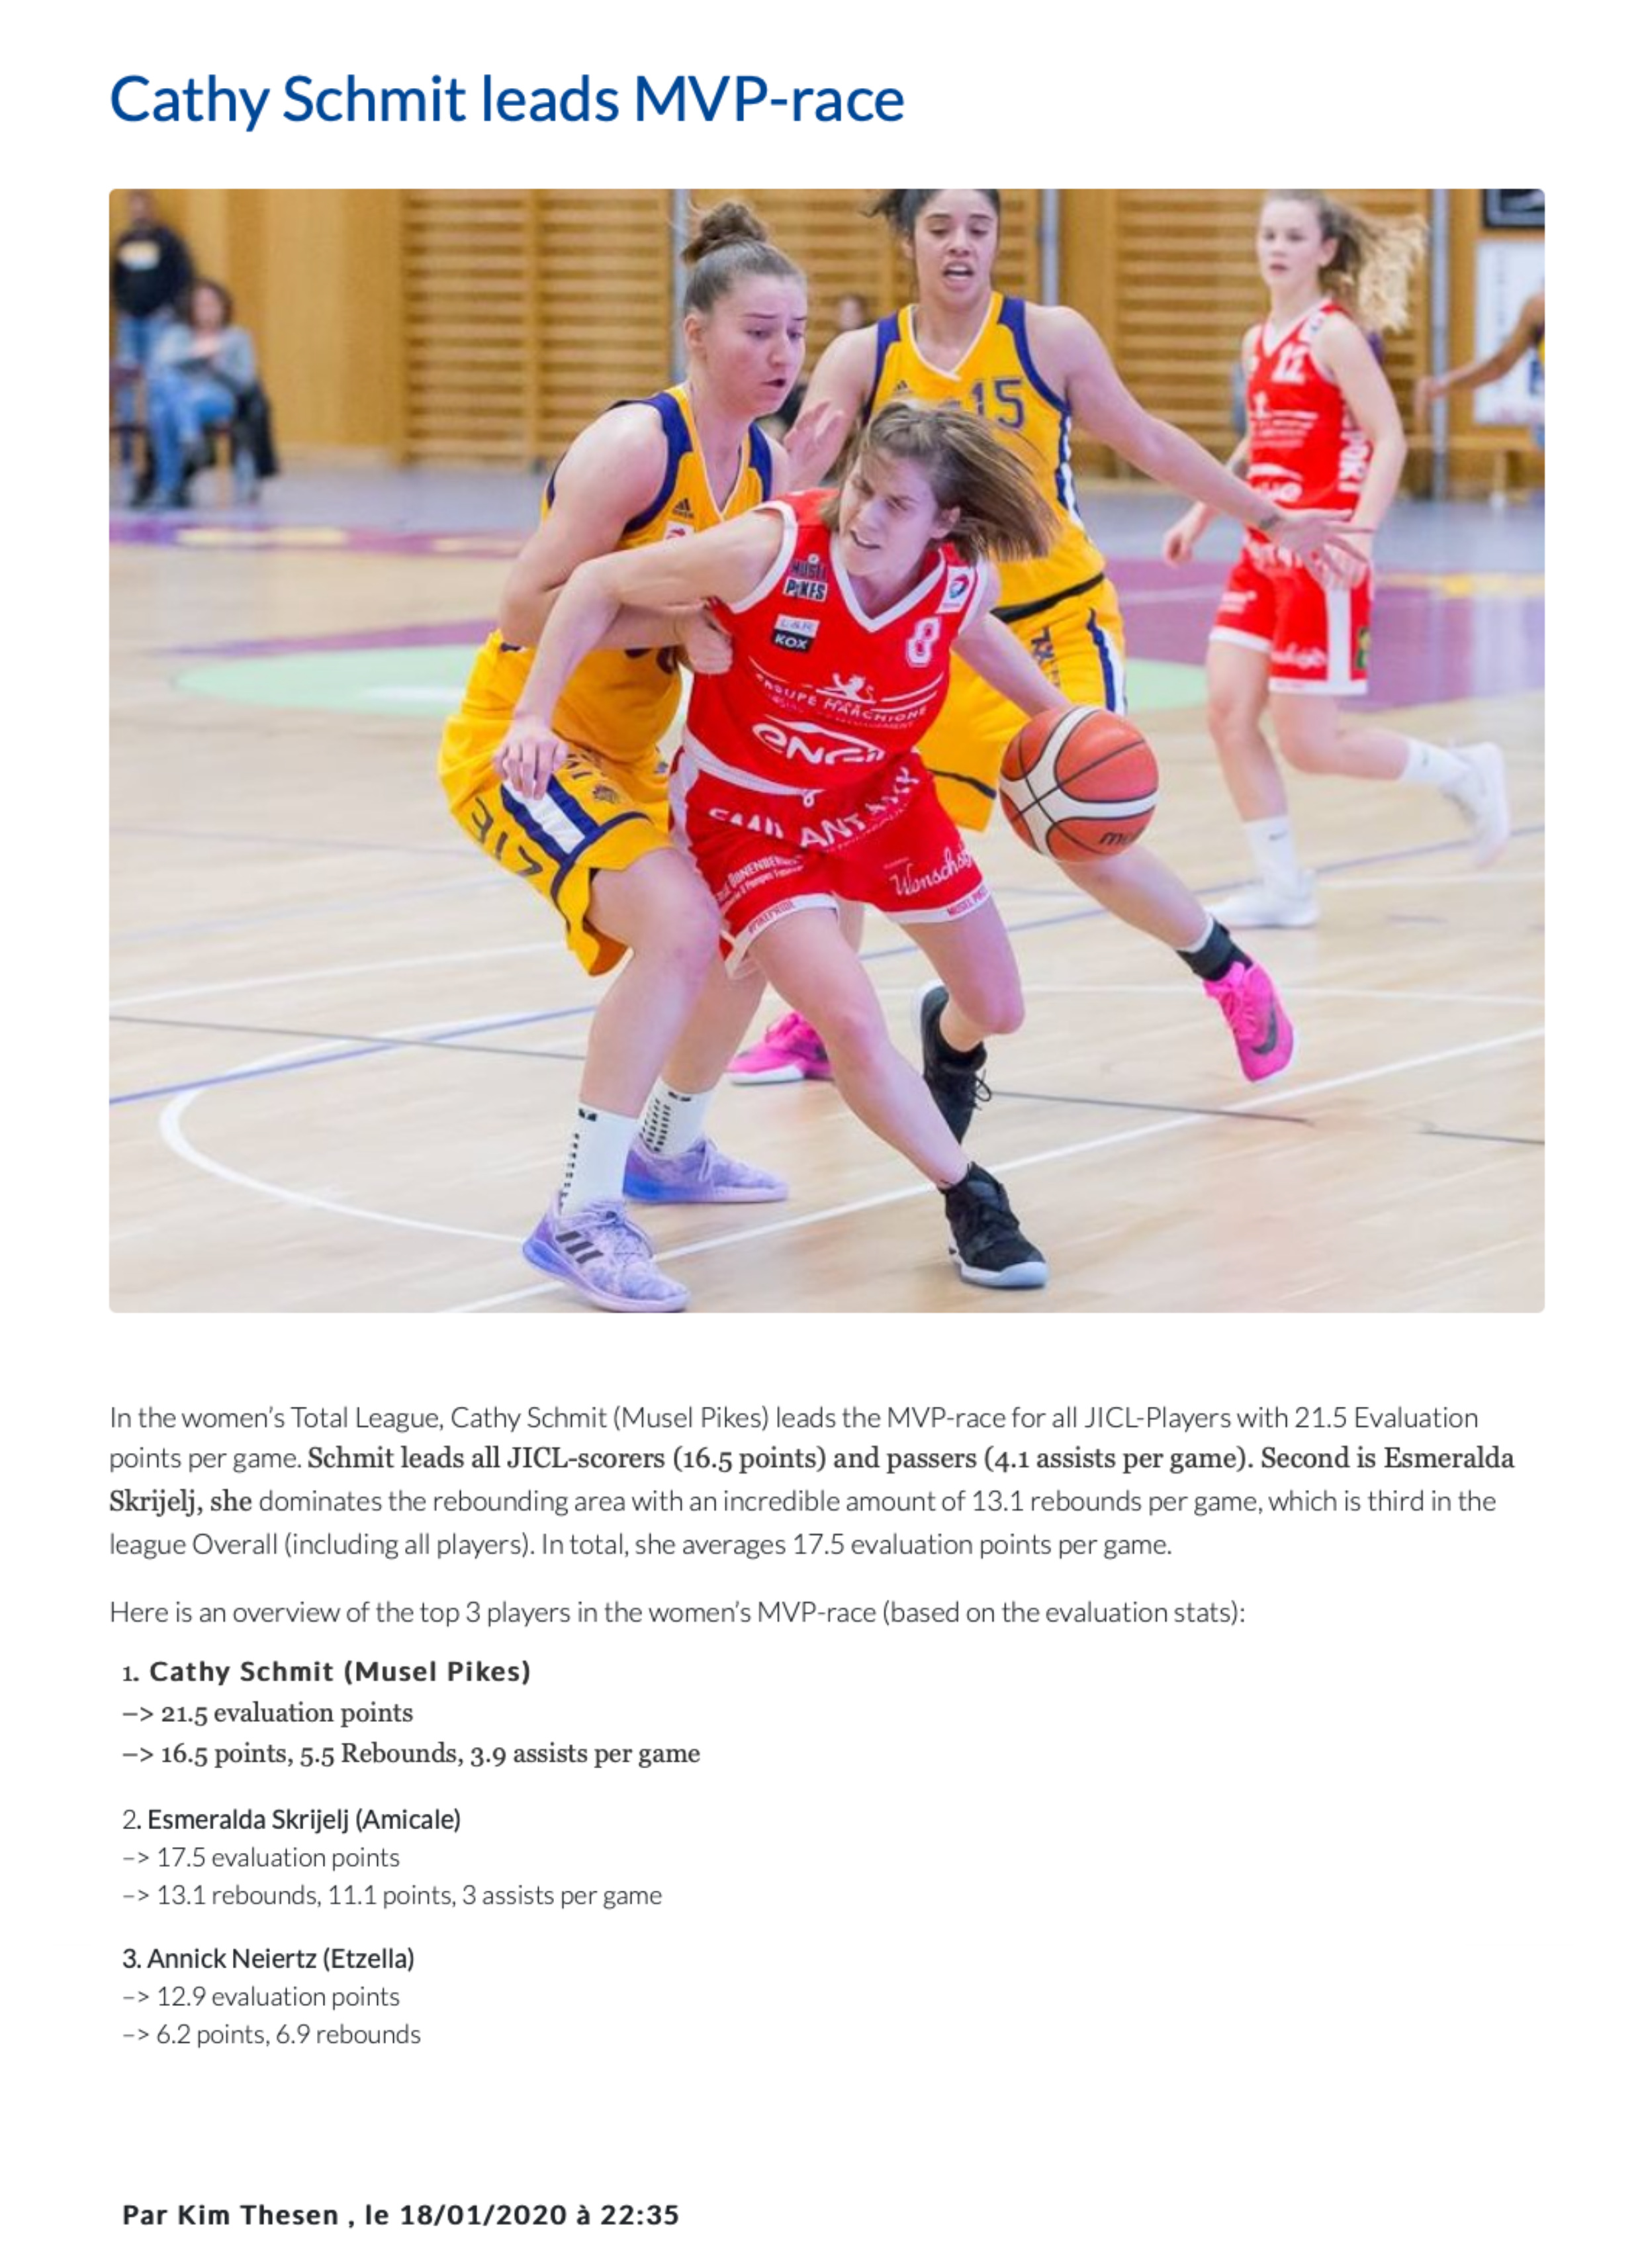 Cathy Schmit leads women MVP-race (source Luxembourg.basketball)